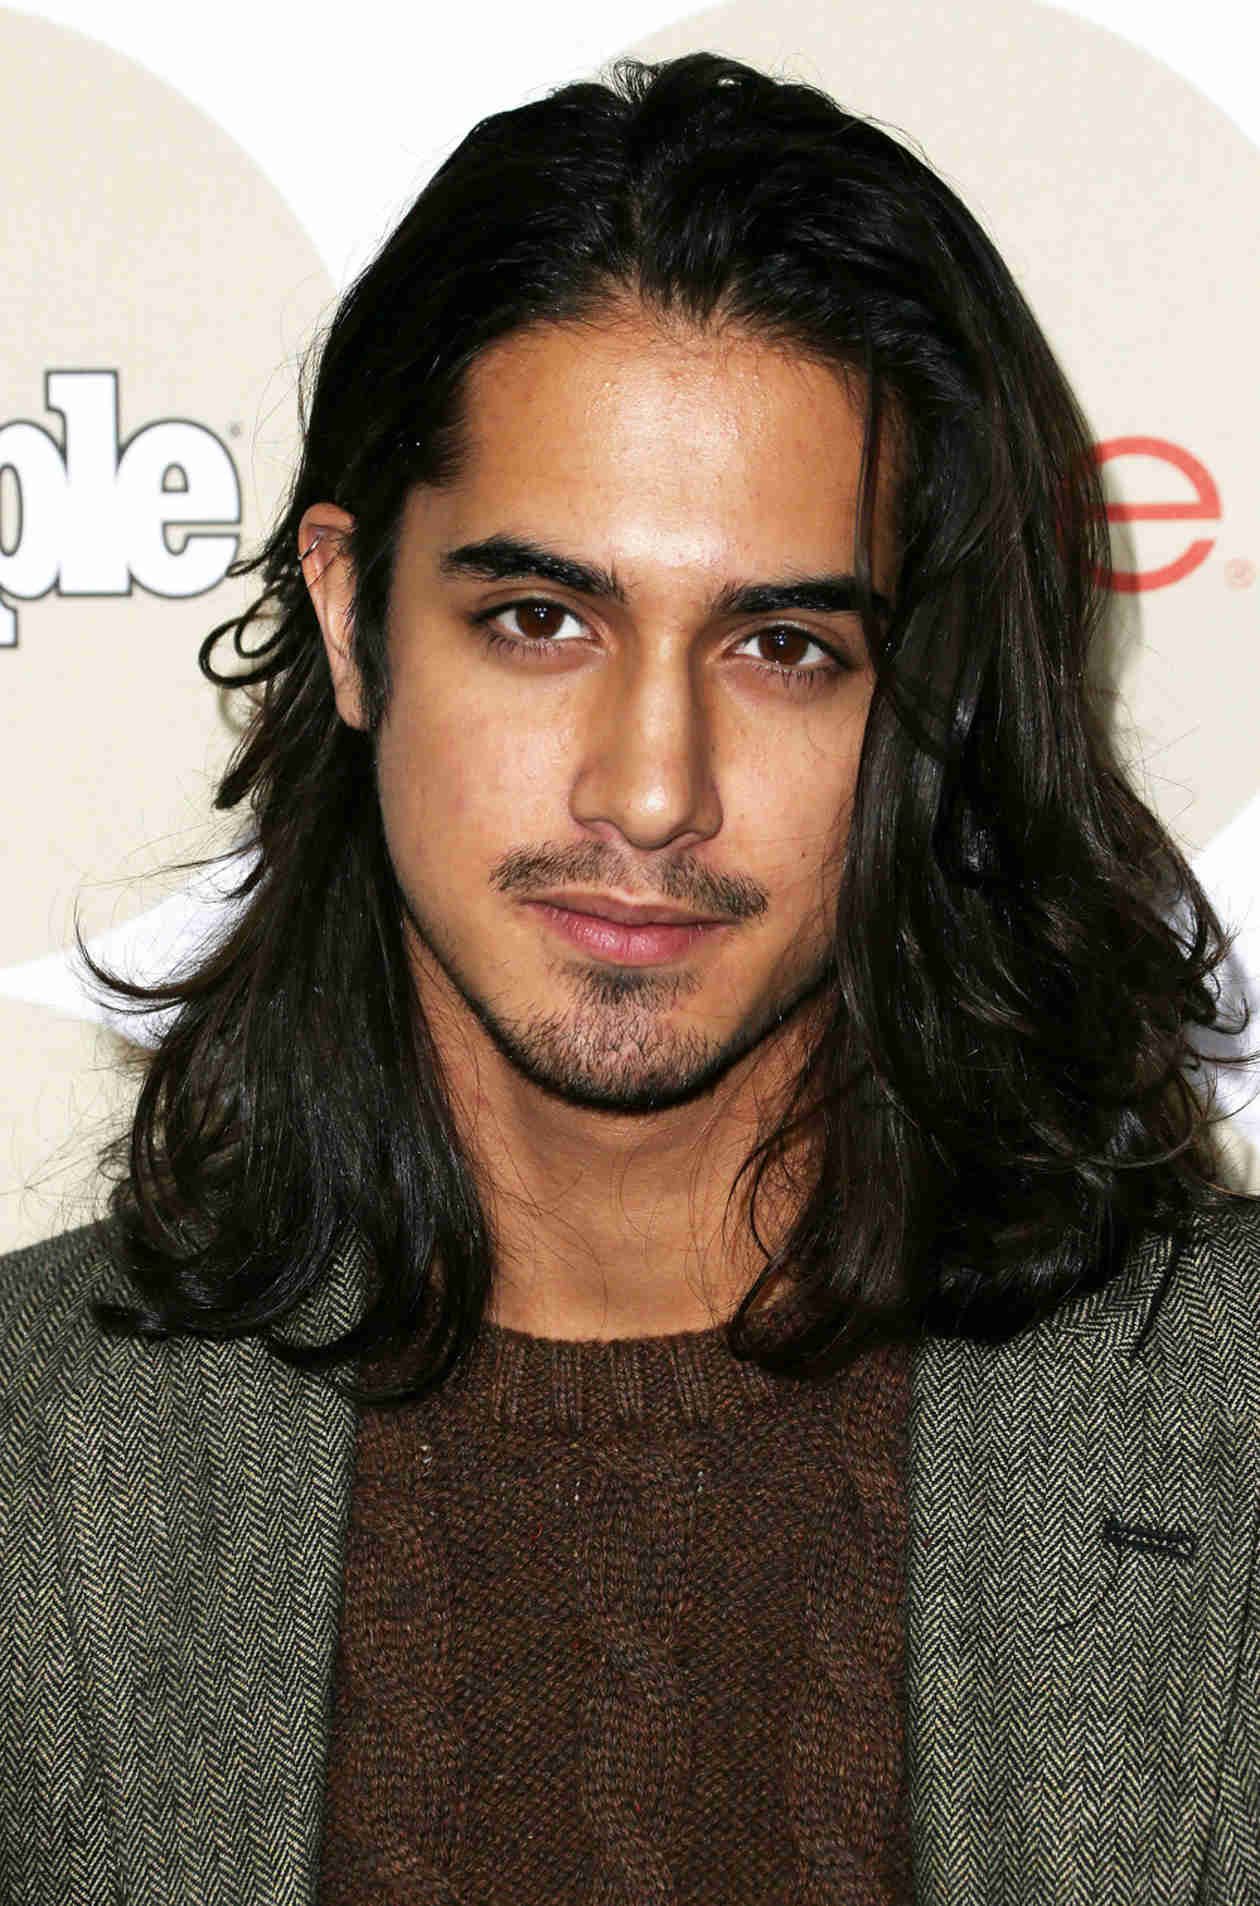 Does Twisted Star Avan Jogia Have a Girlfriend?